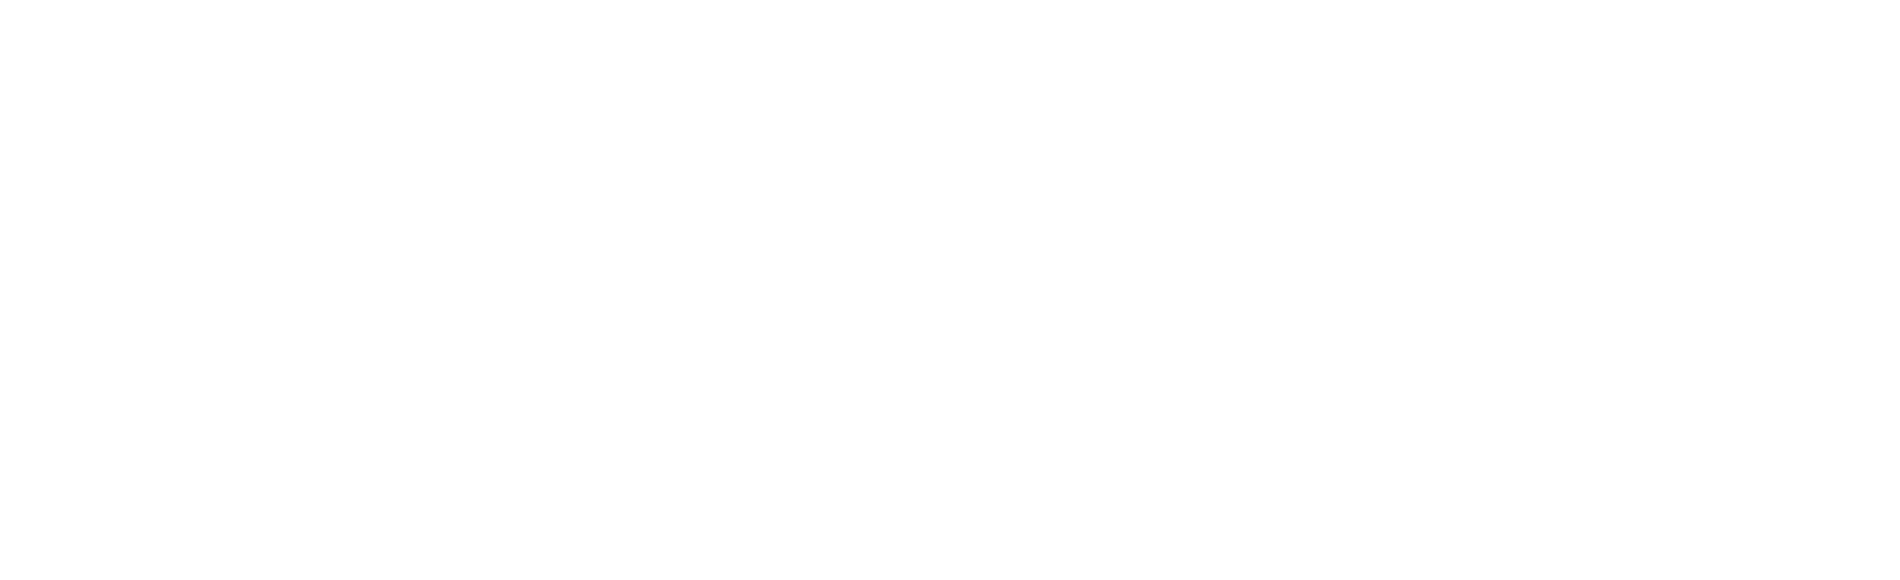 g-suite-logo-white-trans.png